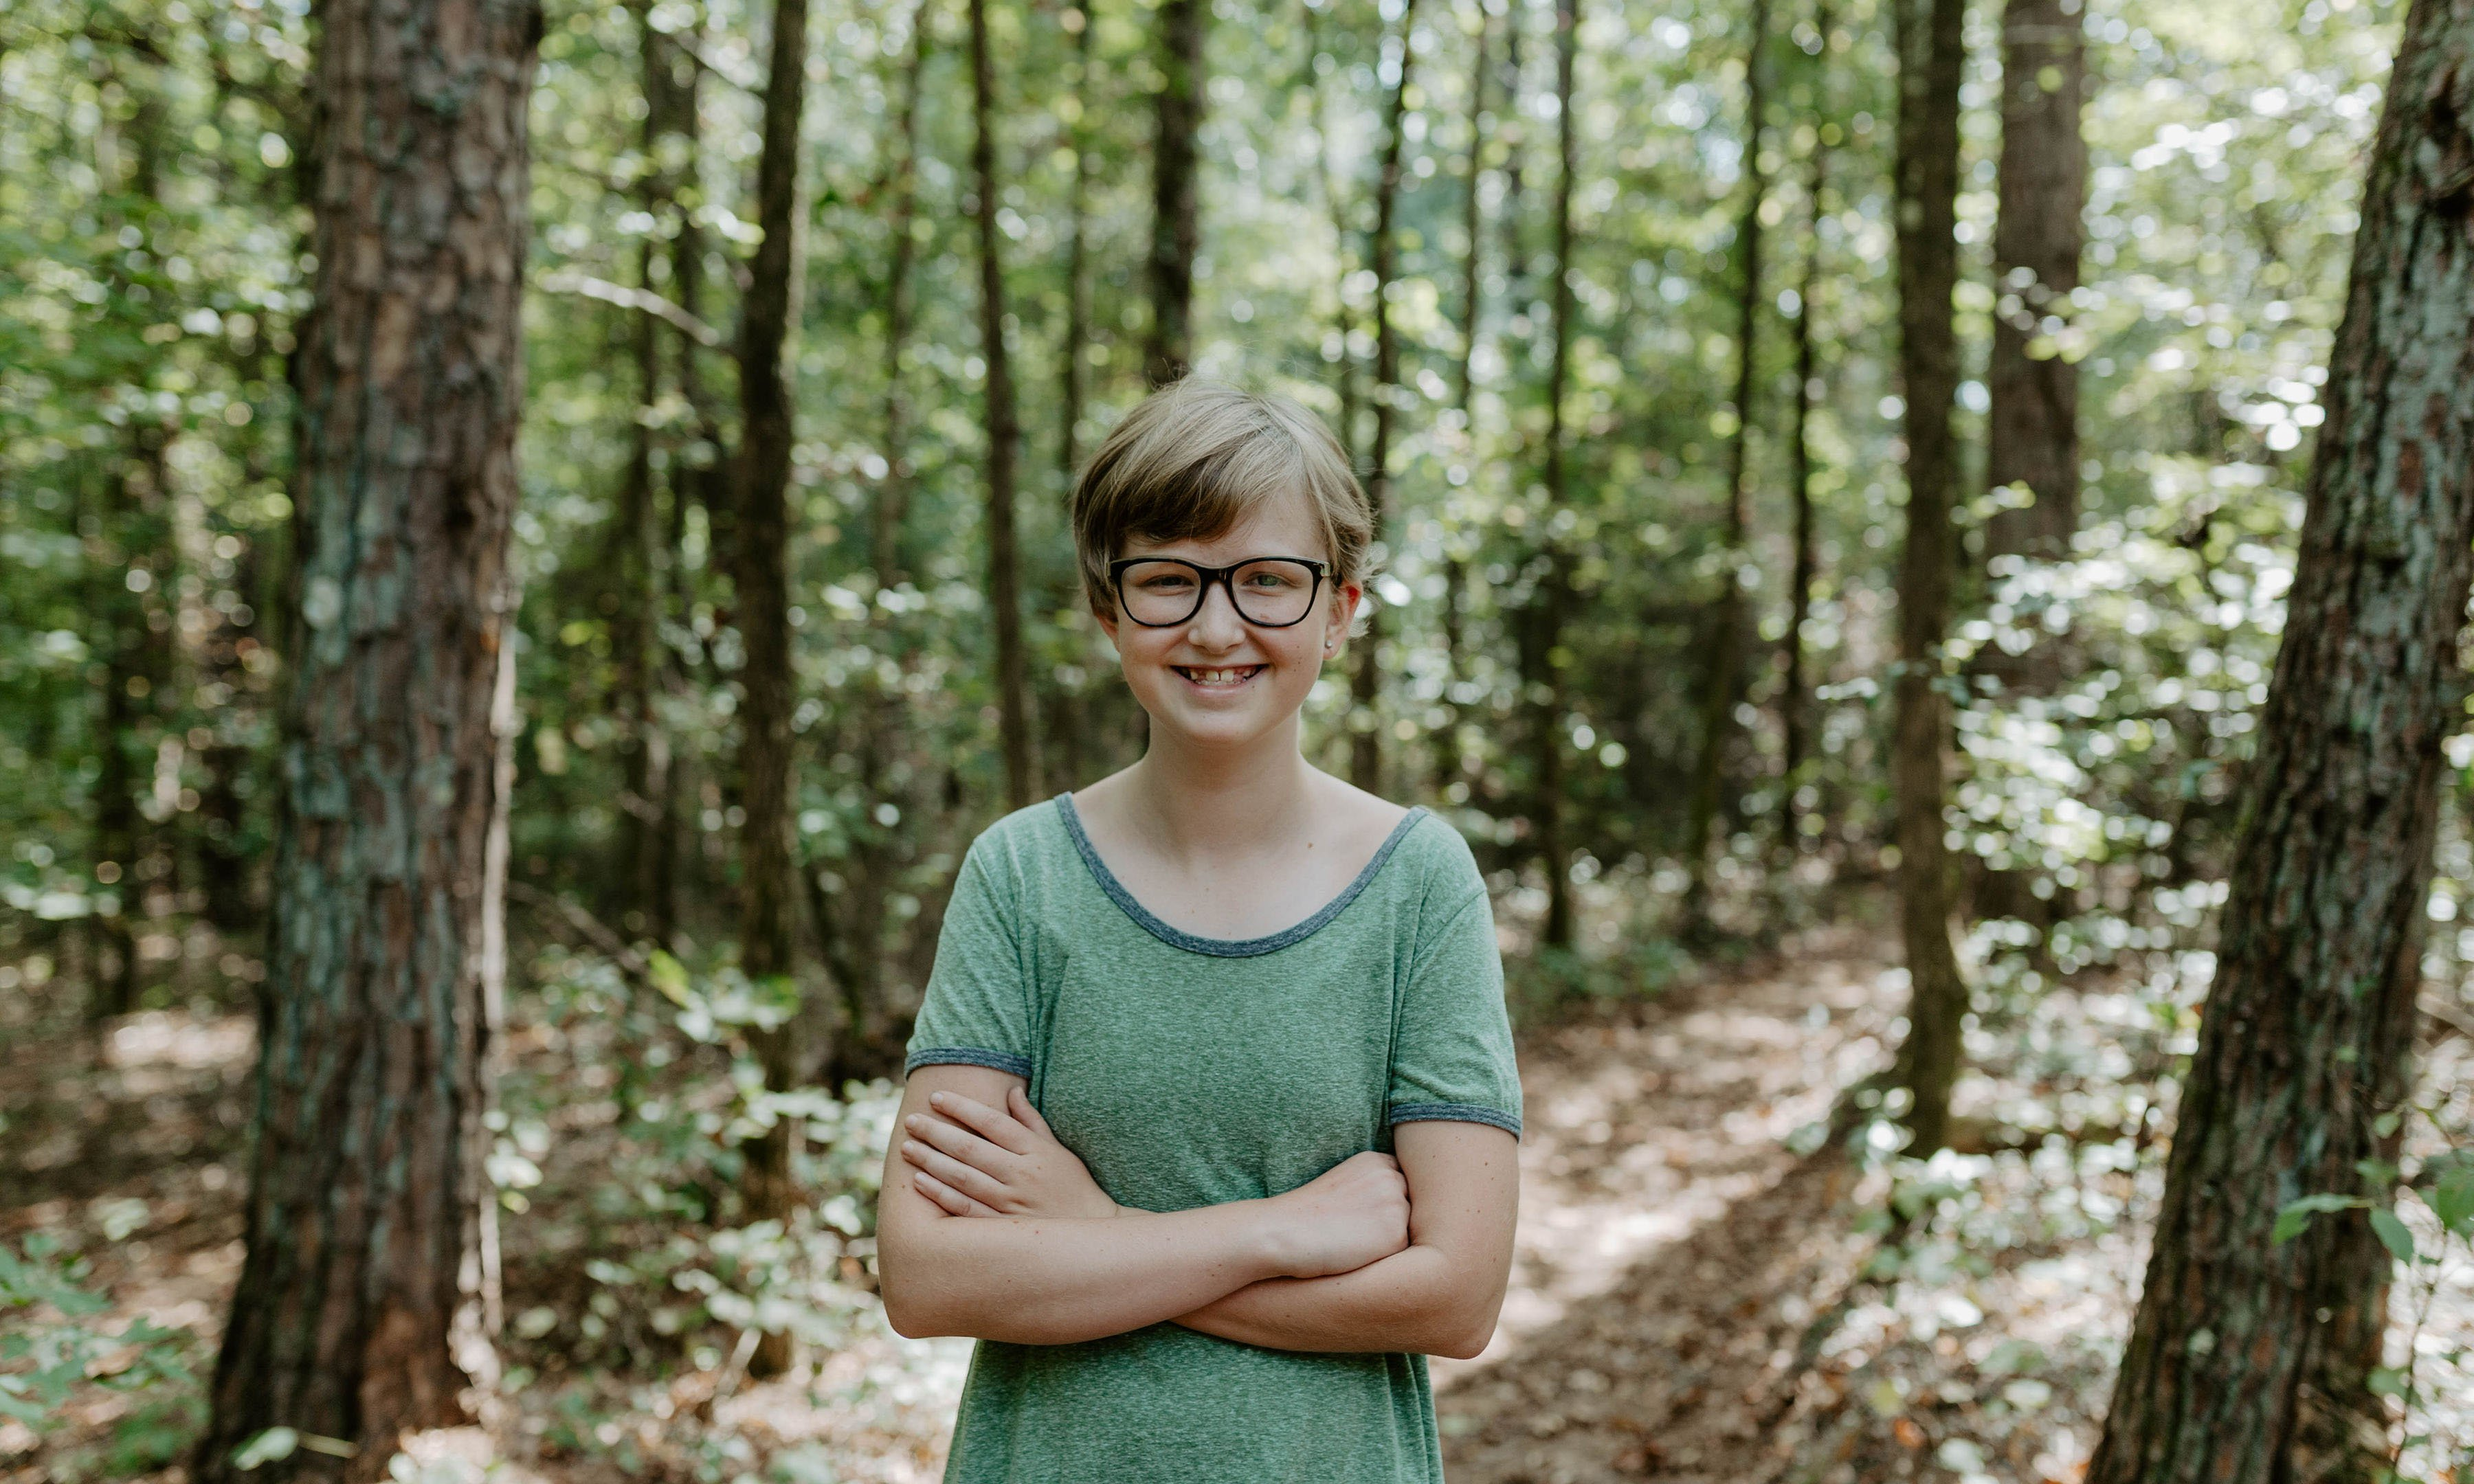 Lillian Hollis is a seventh grader in Greenville County. Photo by Morgan Yelton